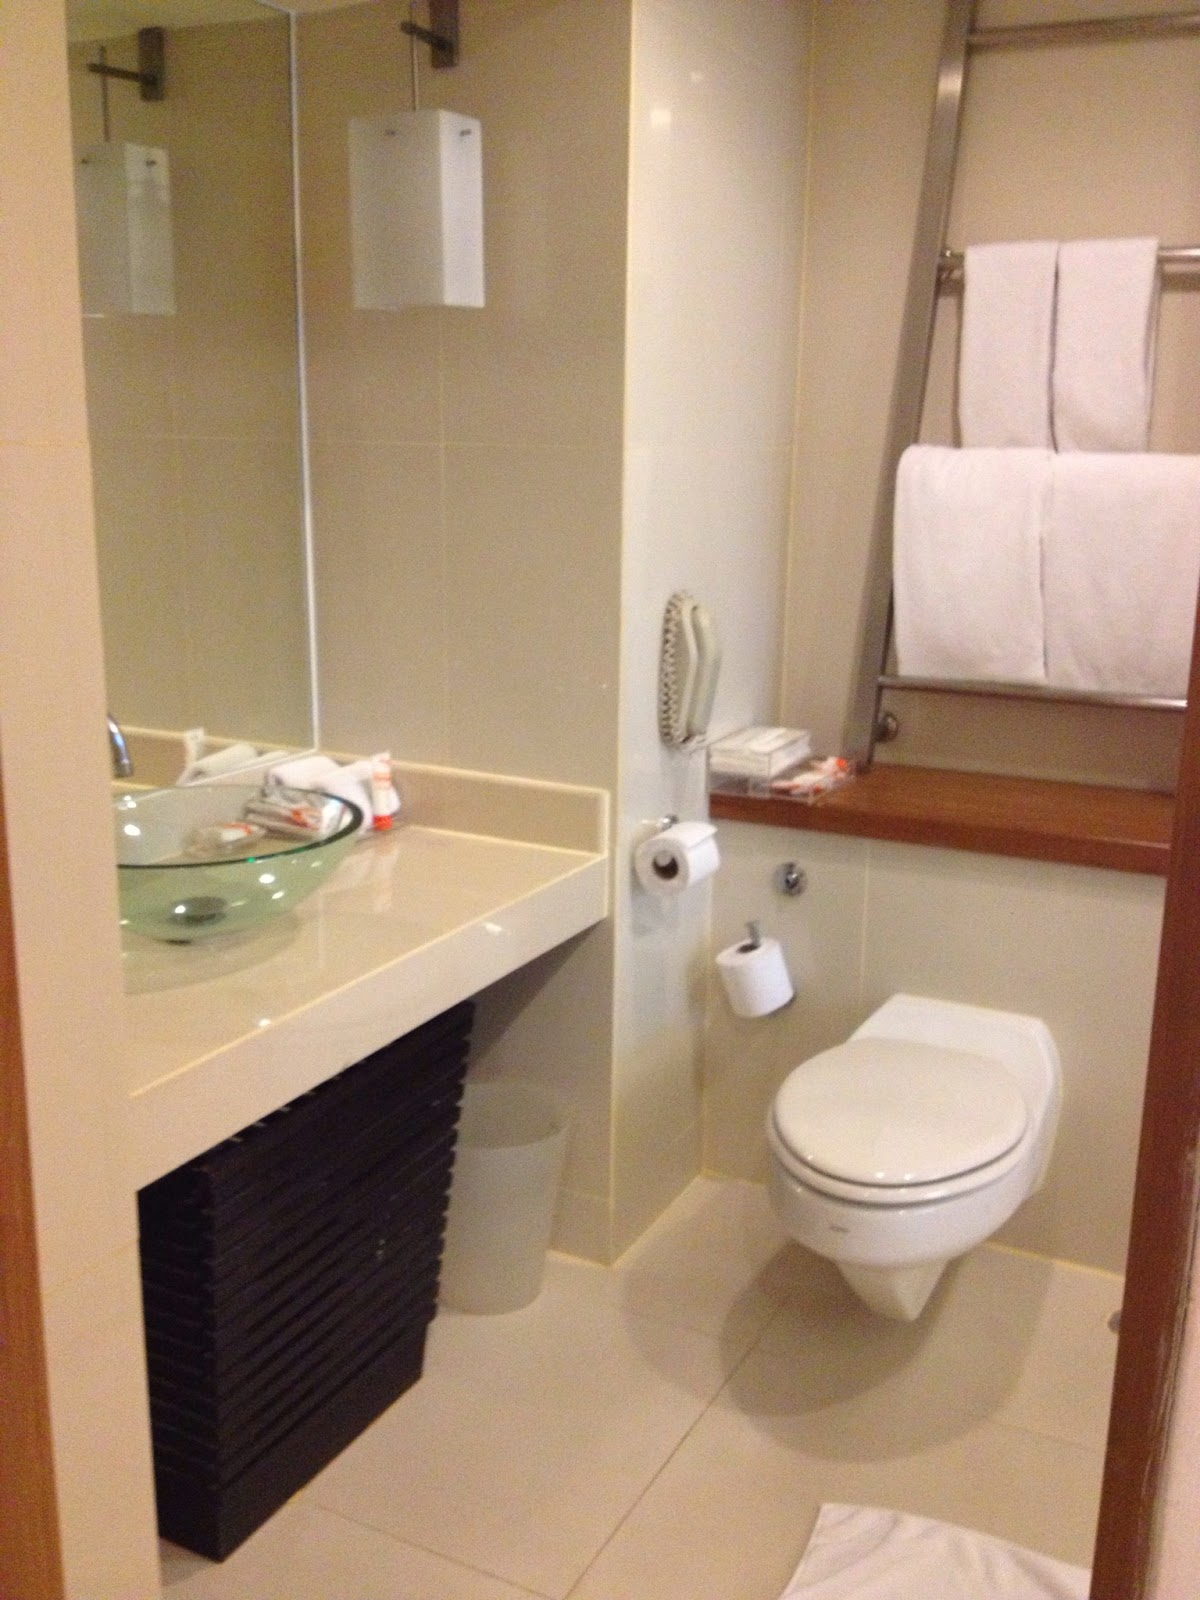 Chiang Mai - Our bathroom at Dusit D2